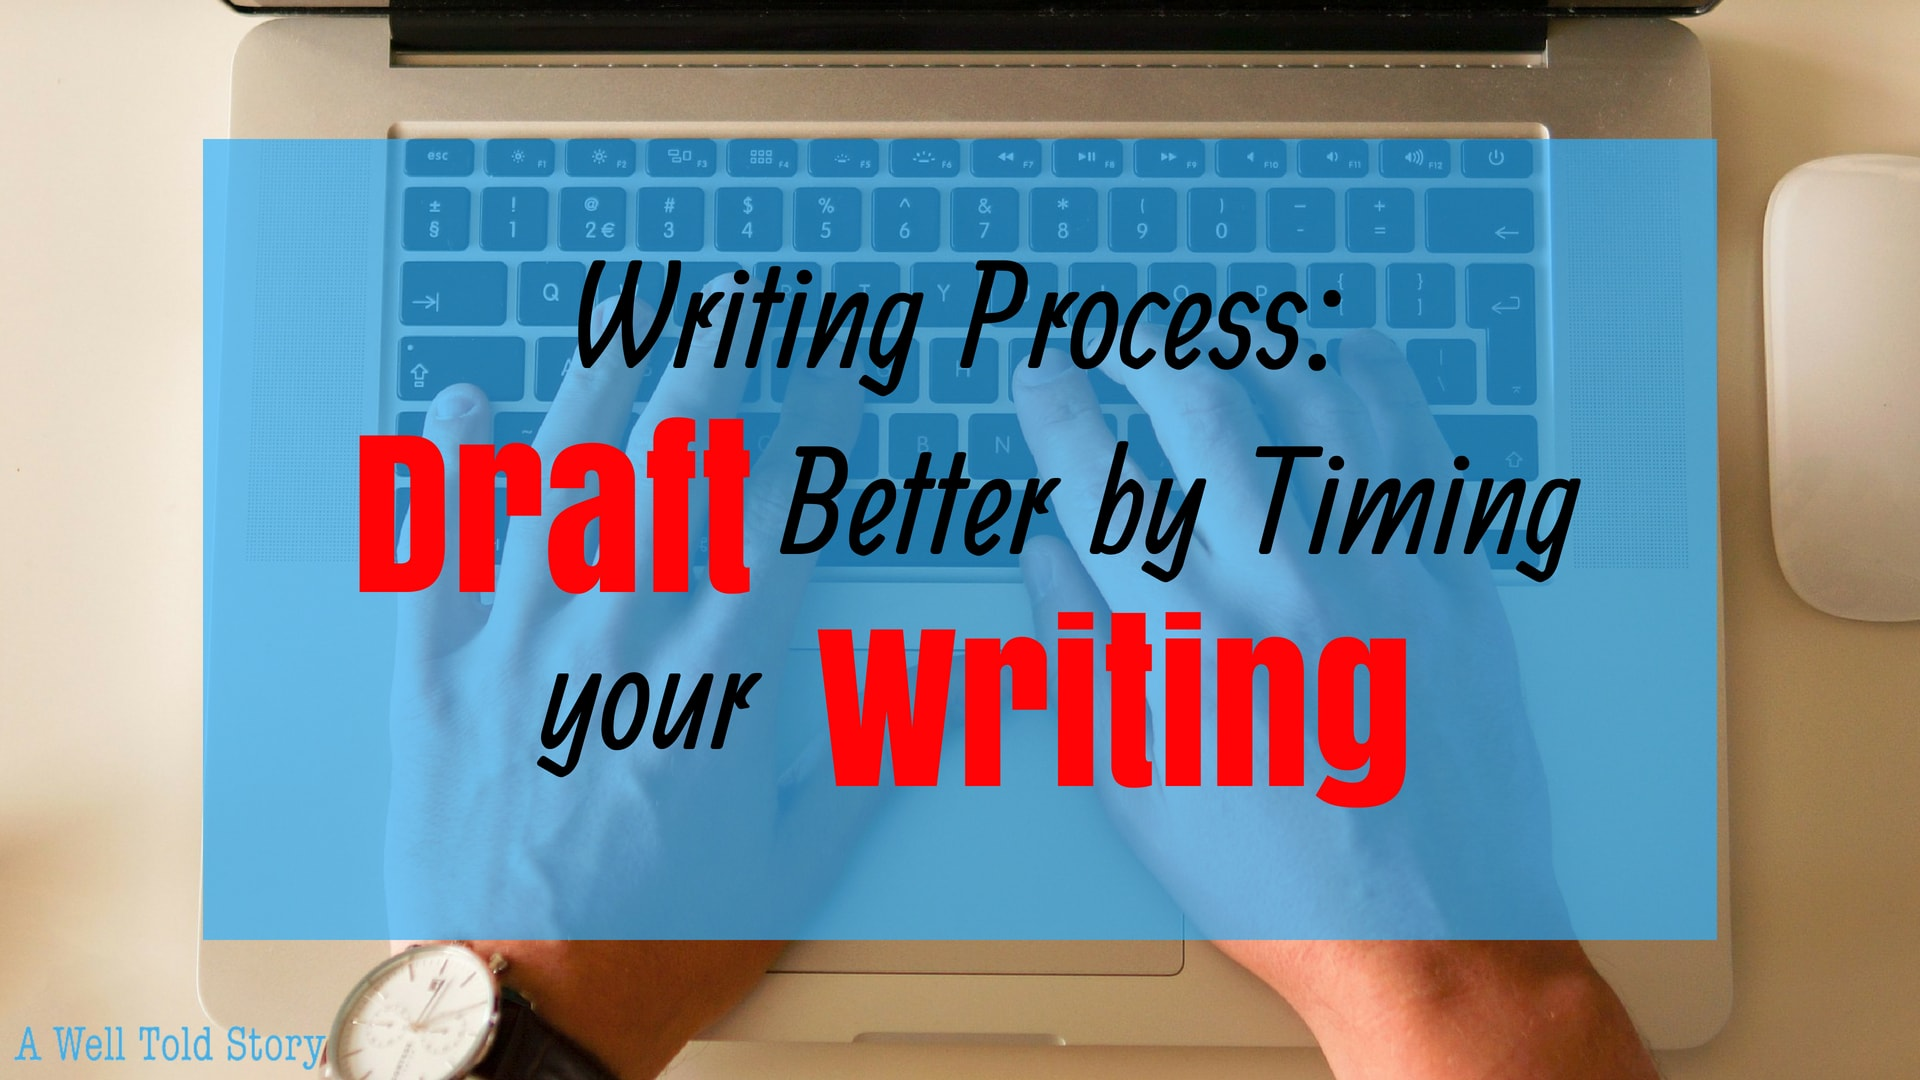 Draft Better by Timing Your Writing